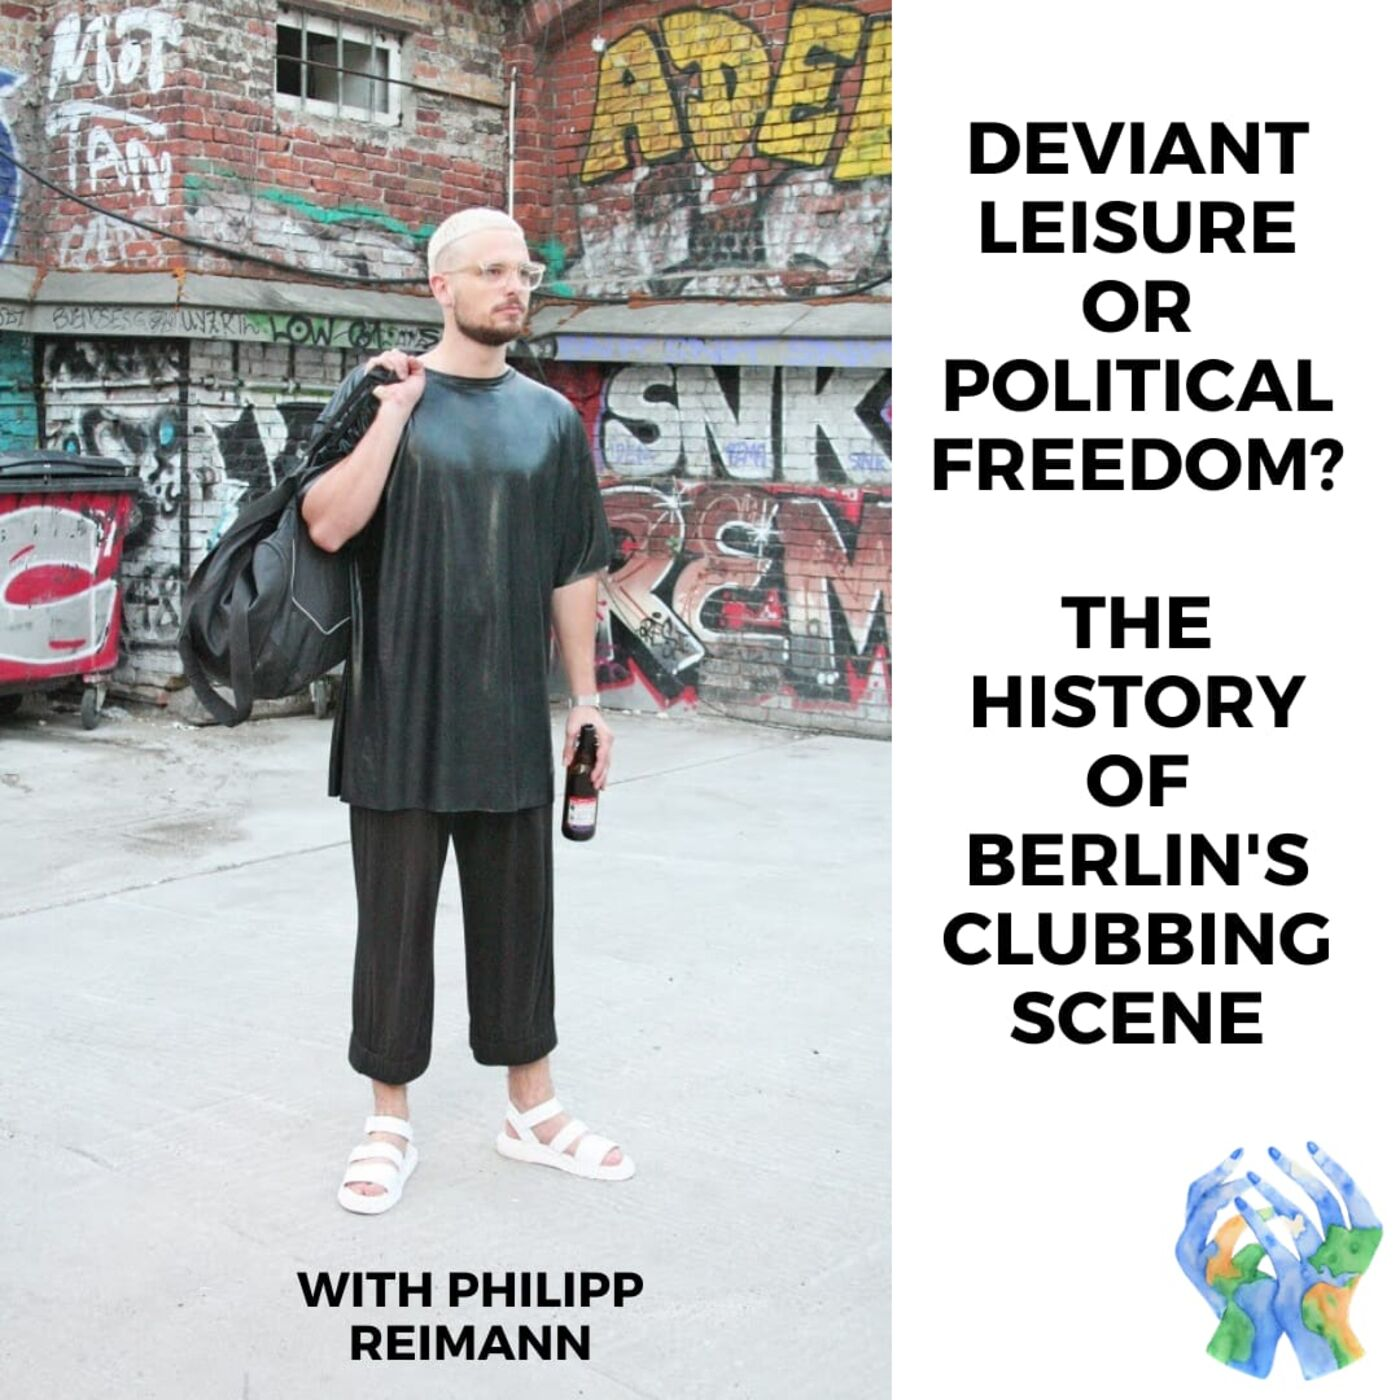 Deviant Leisure or Political Freedom? The History of Berlin's Clubbing Scene with Philipp Reimann